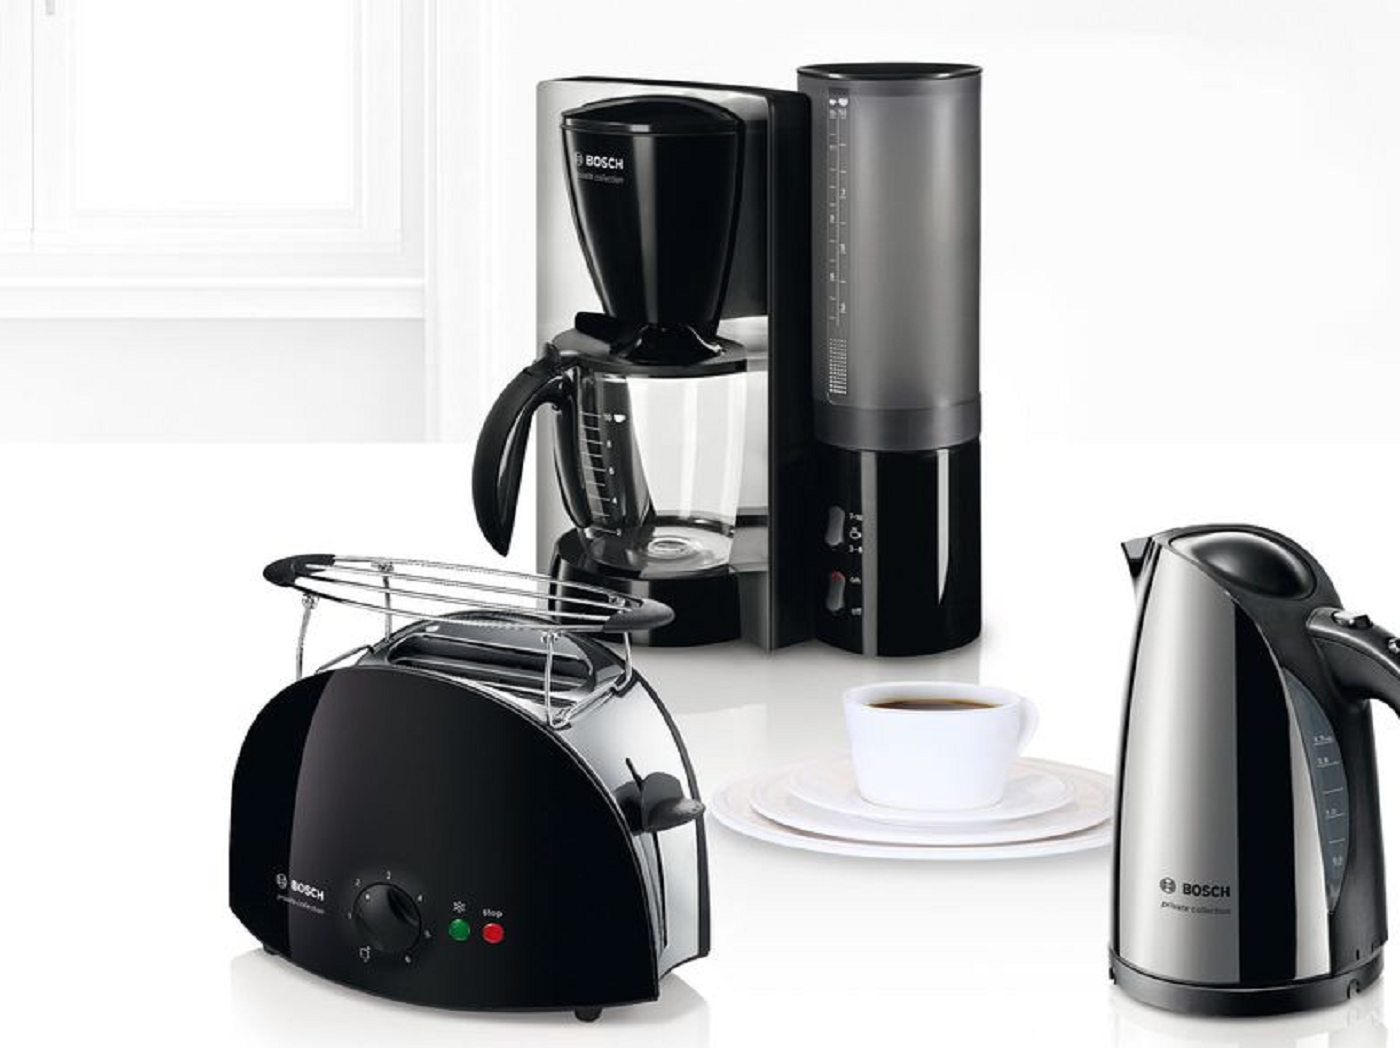 bosch kettle and toasters